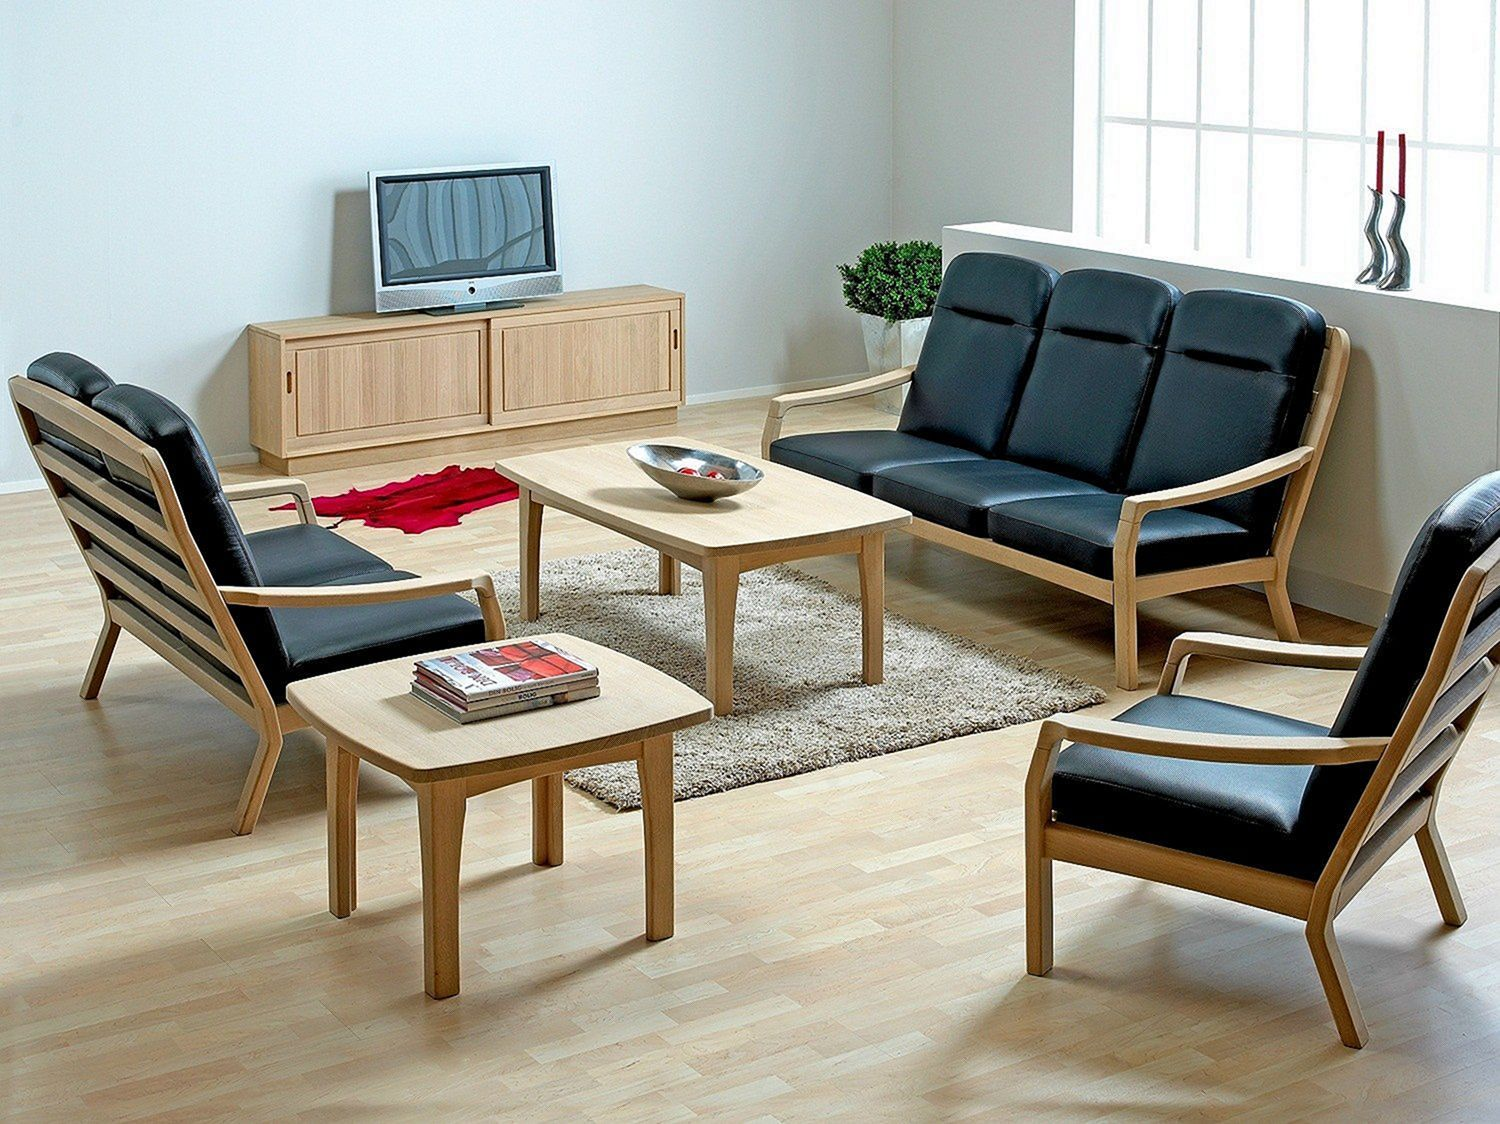 14 Best Living Room Wood Furniture Ideas That Will Leave